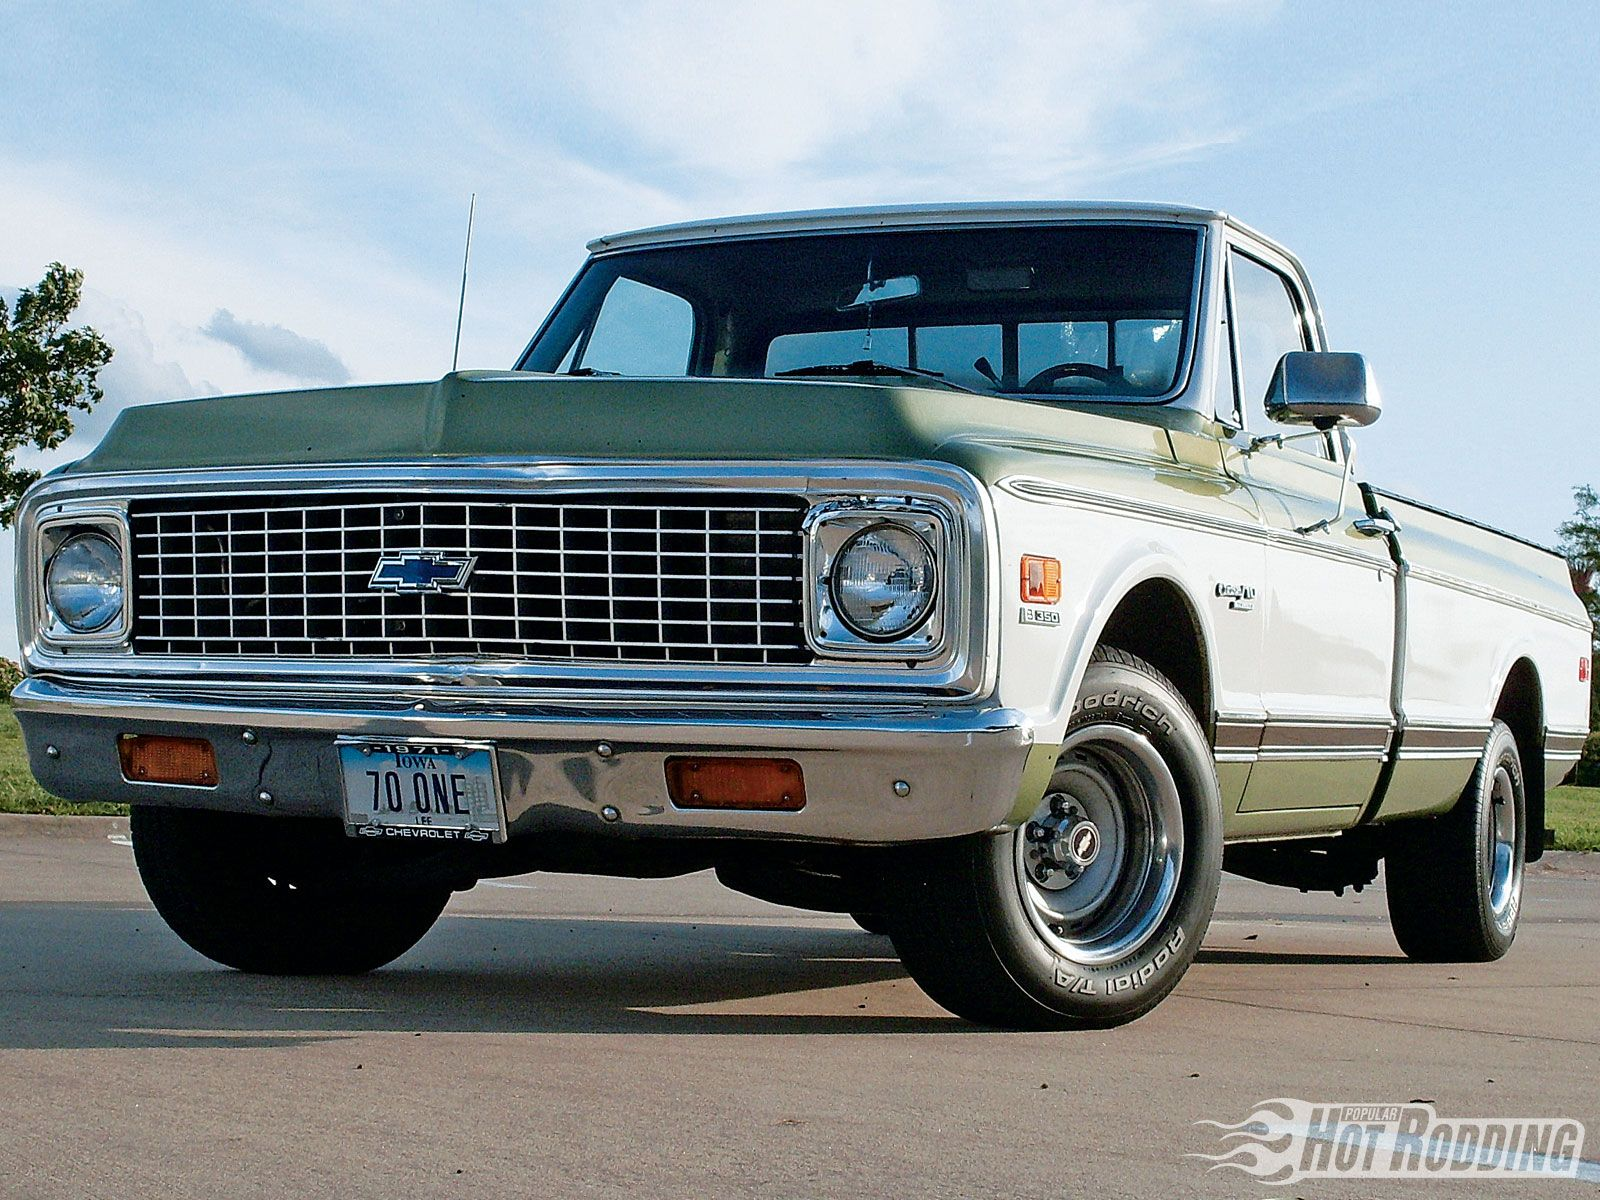 hight resolution of 1971 chevy pickup what were they thinking with that green color